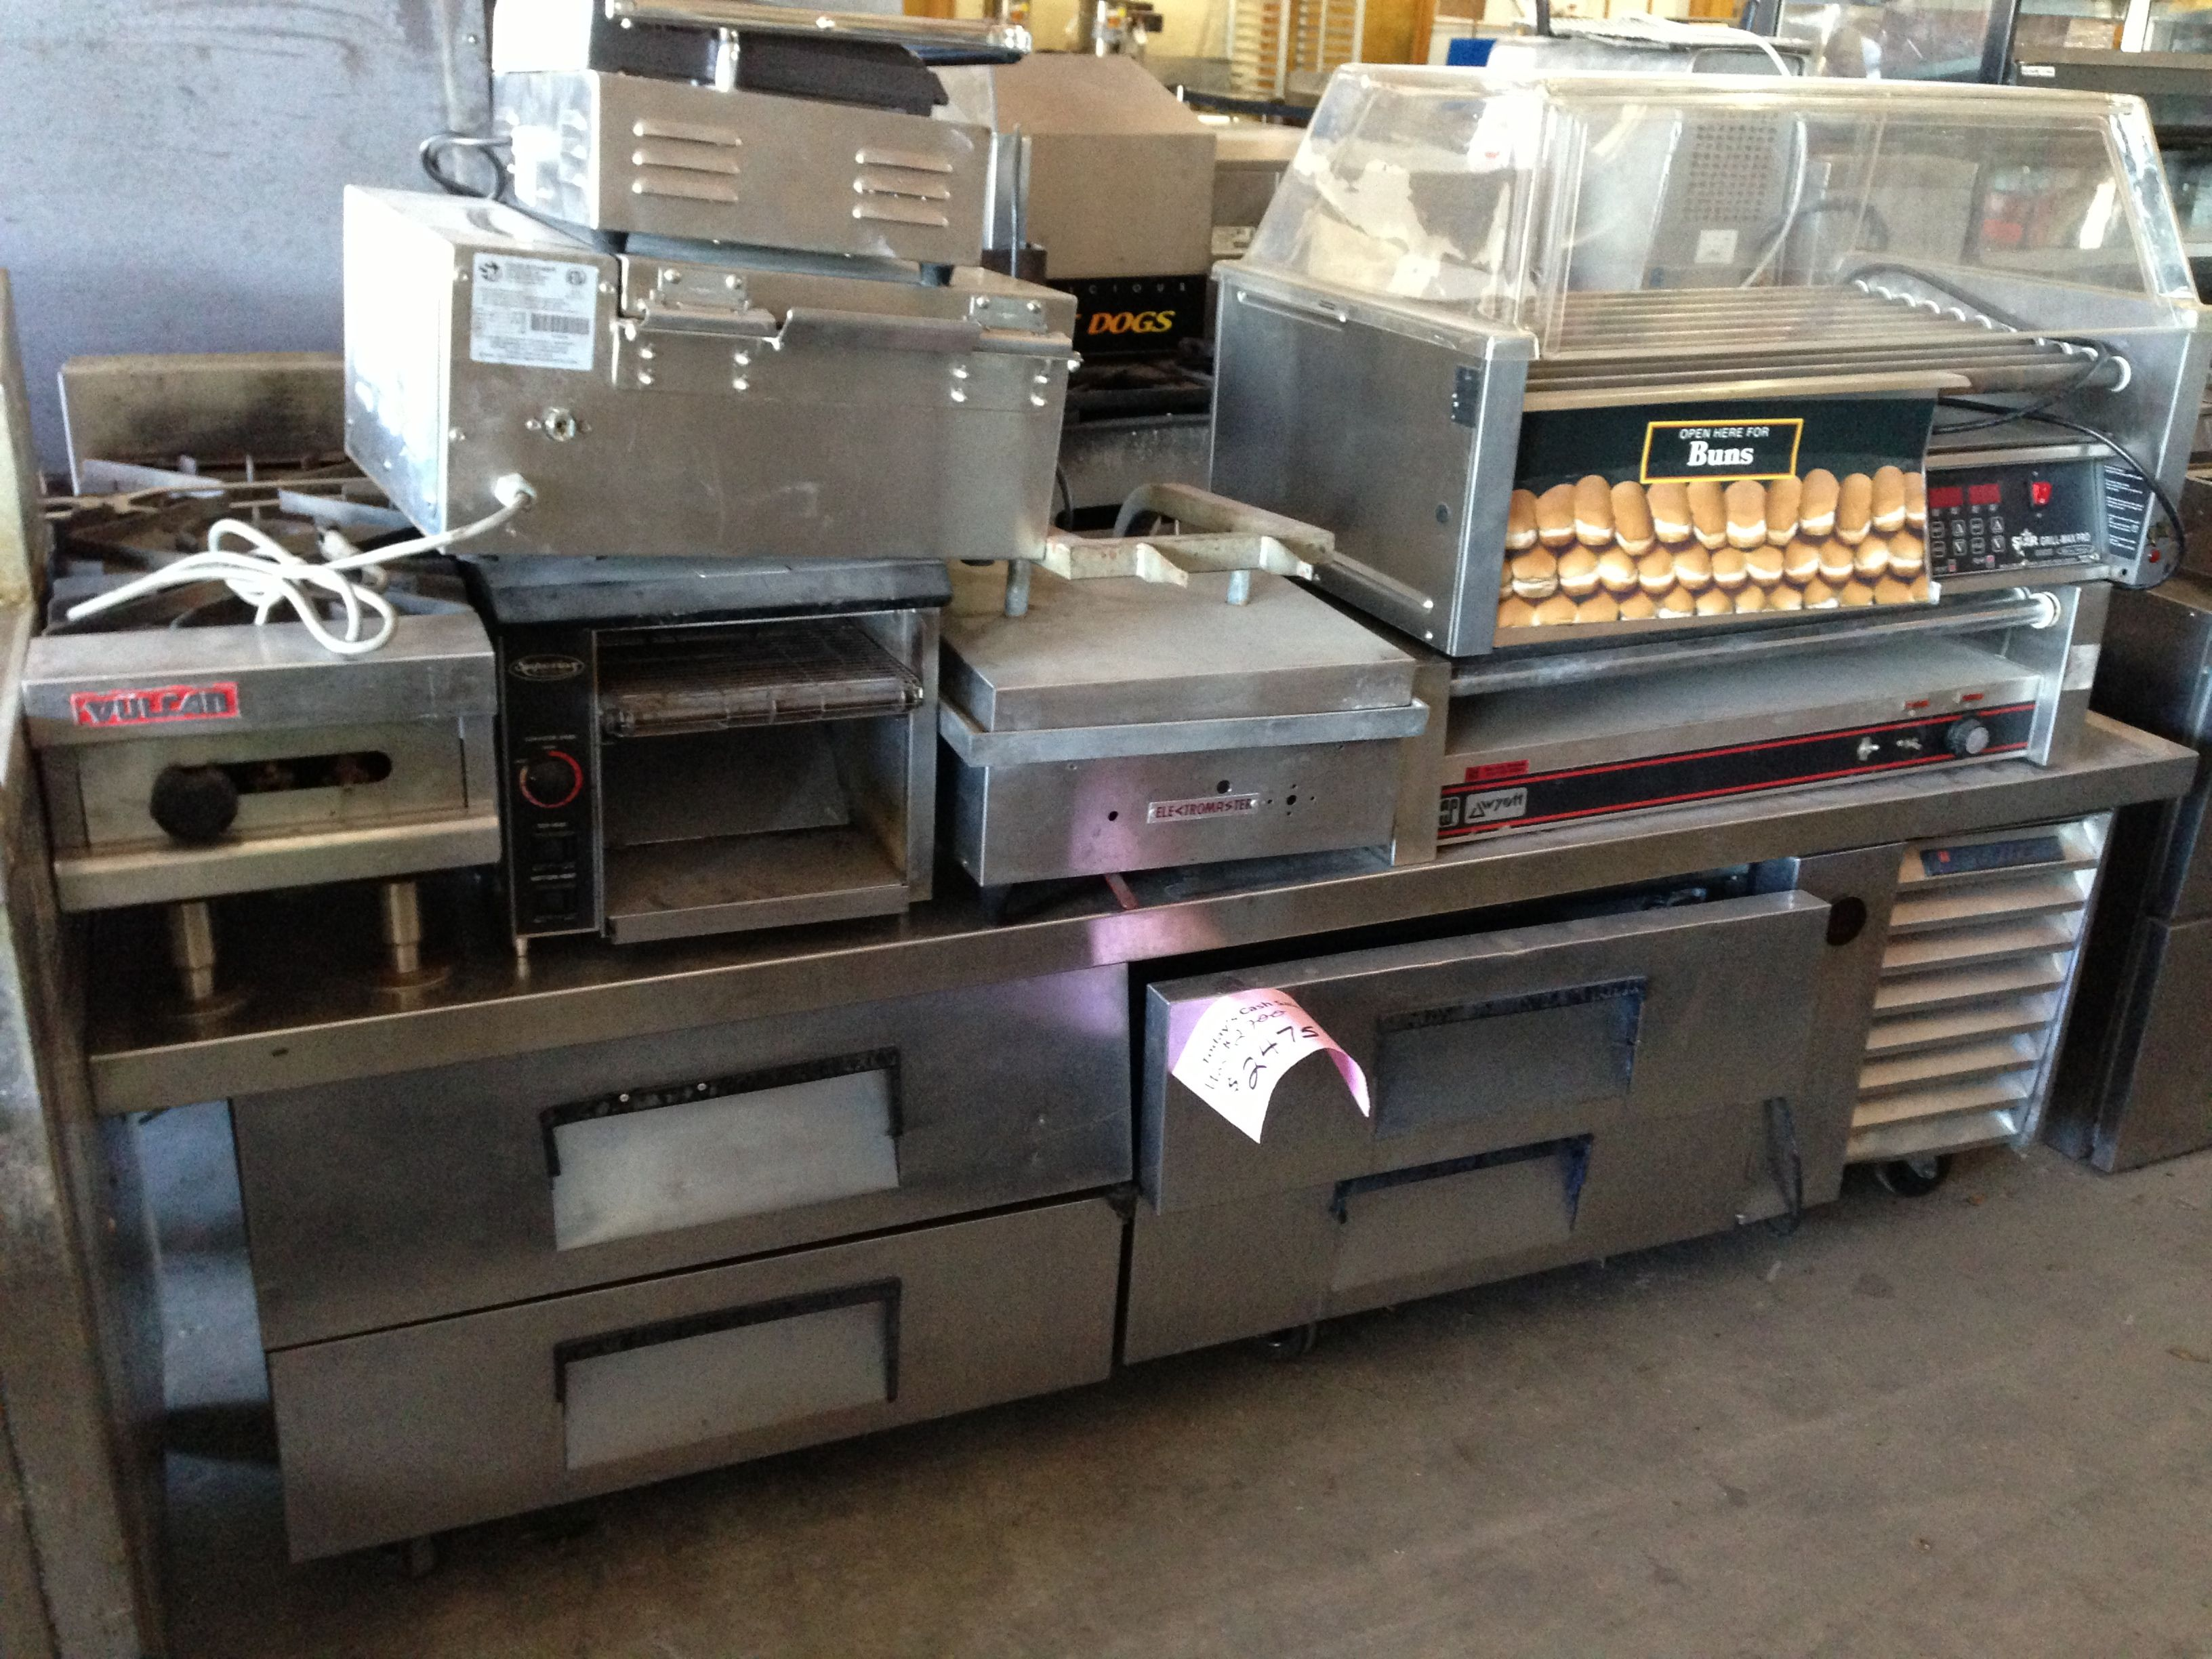 Used tables and chairs for restaurant - All Your Used Restaurant Equipment Needs Used Ovens Used Alto Shaams Used Prep